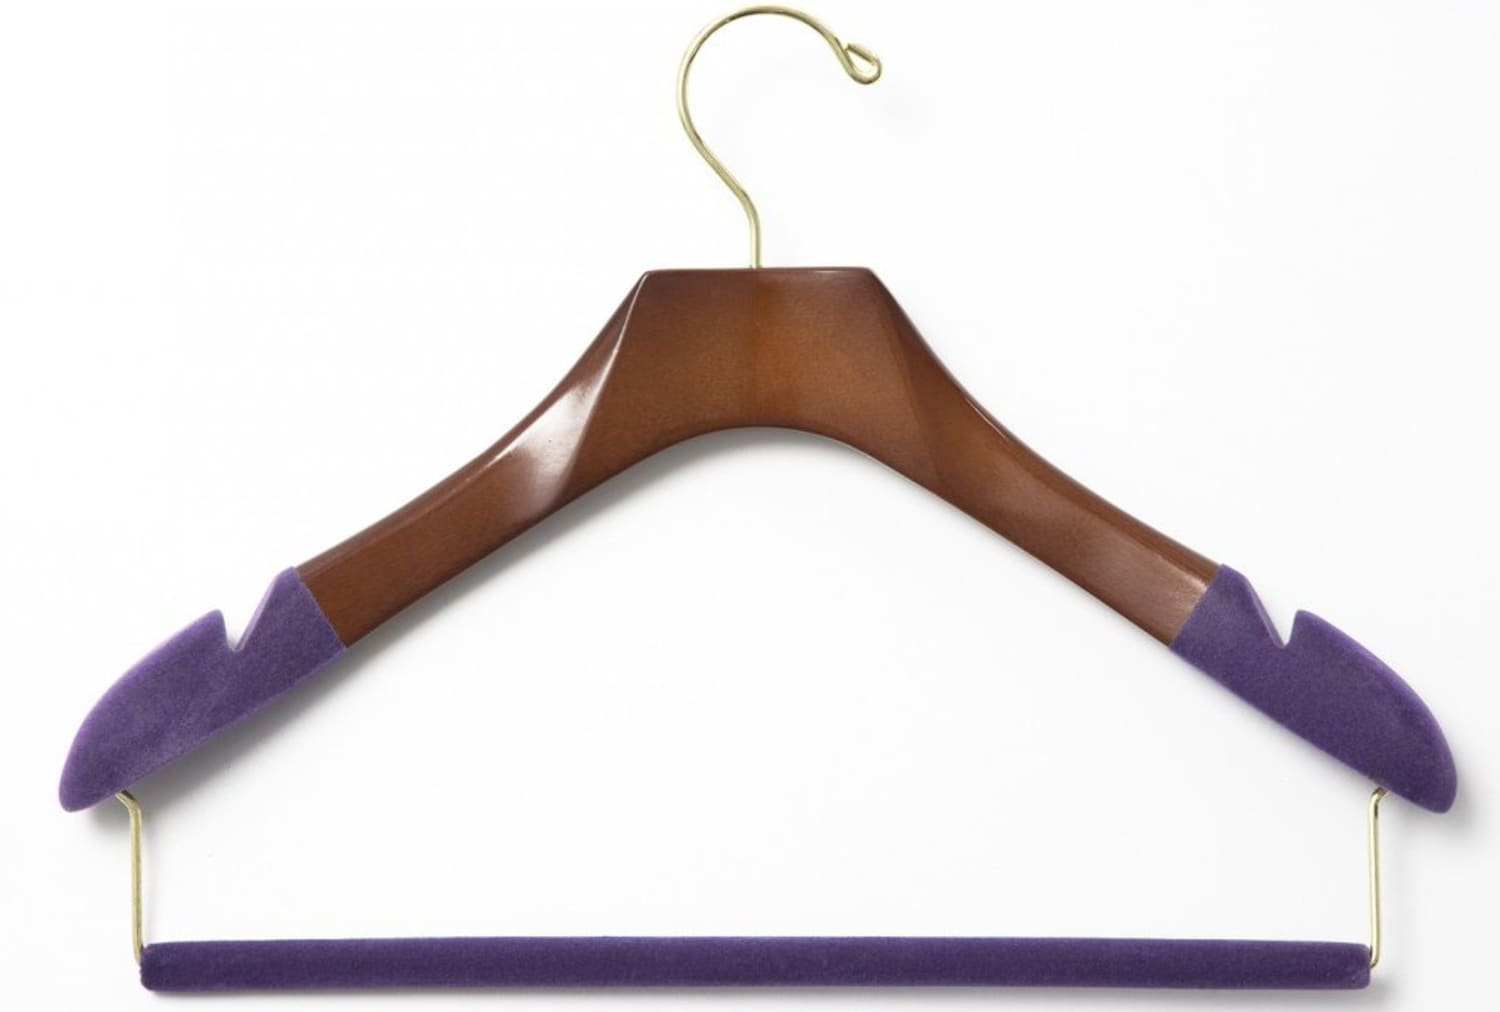 Top Hangers: Luxury Hangers by Kirby Allison & Two More